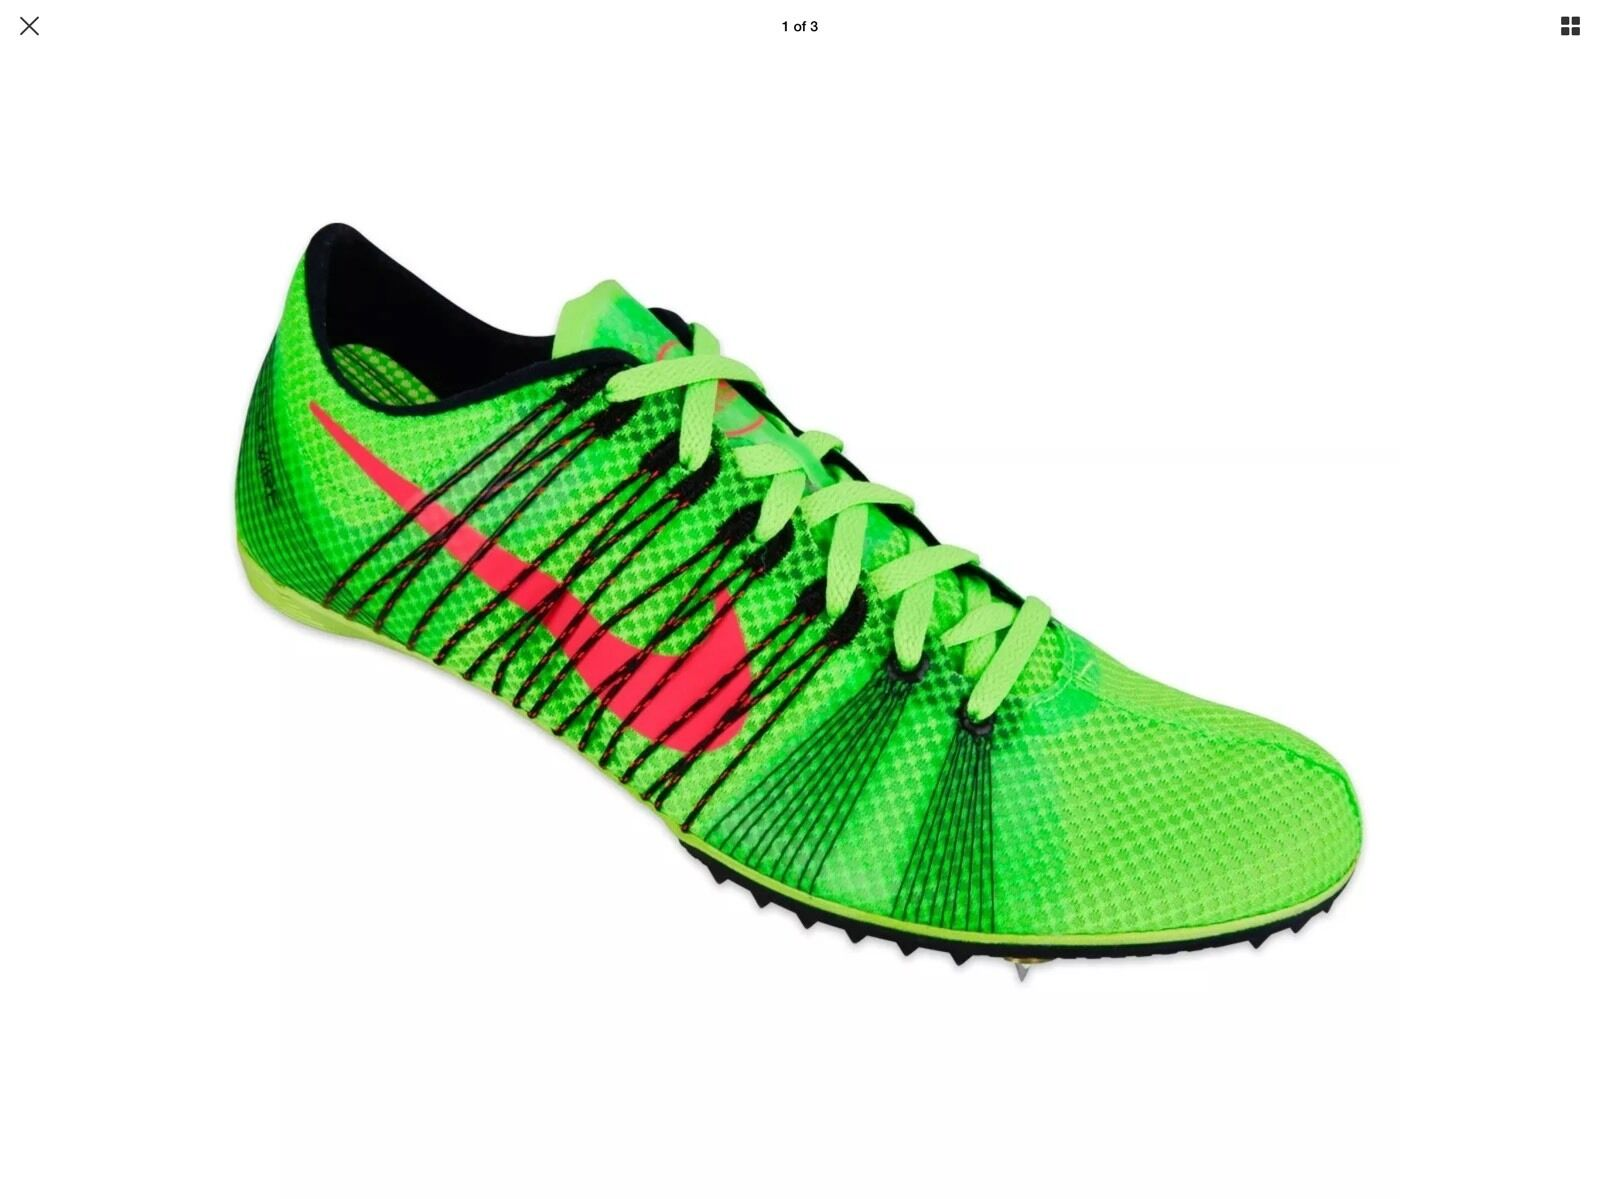 NEW Nike Zoom Victory 2 Flyweave Distance Running Spikes XC Shoes Sz 11.5